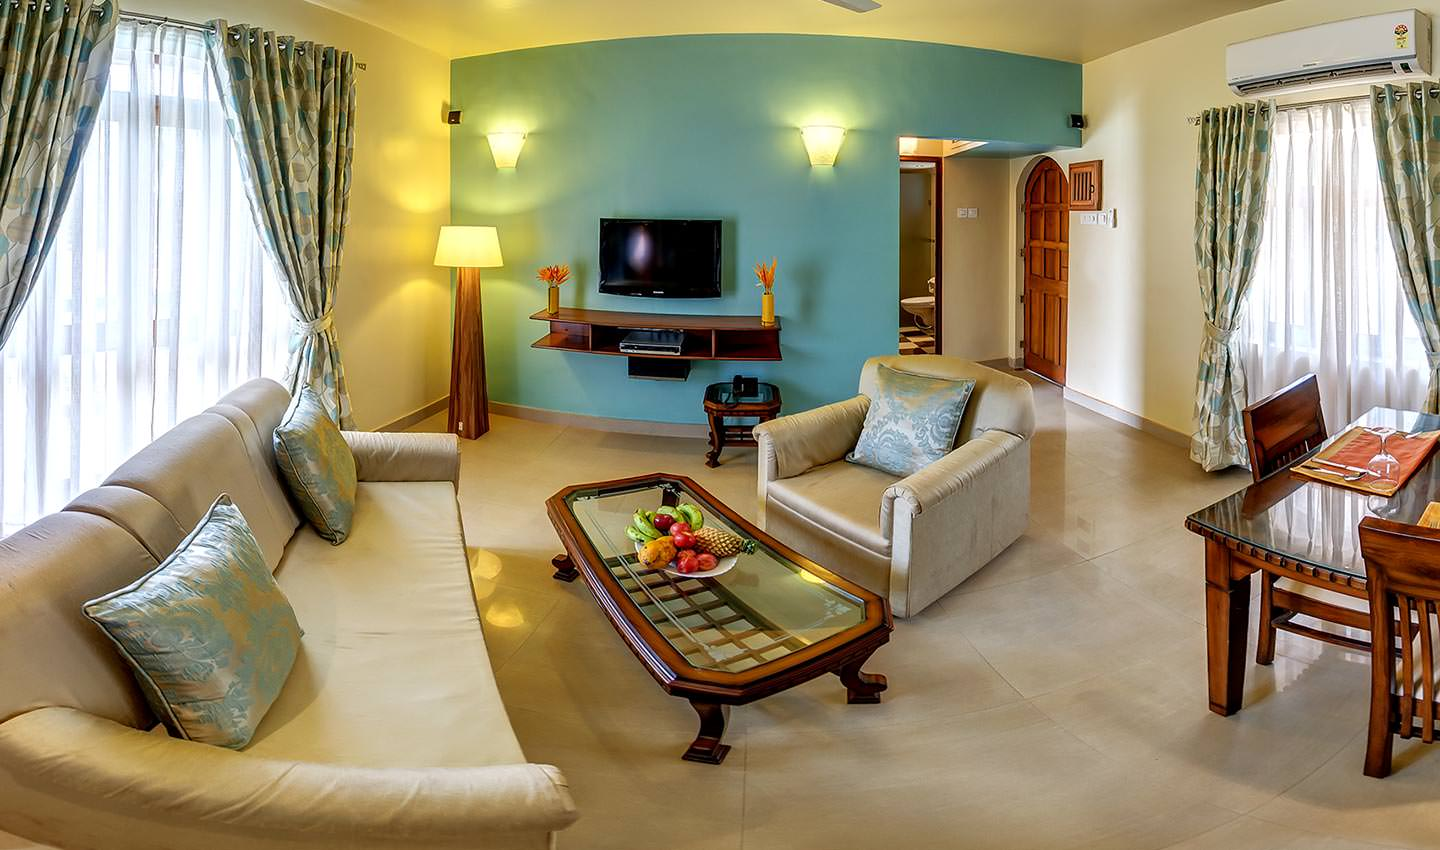 luxury hotel of Karma Royal MonteRio Accommodation Lounge Area